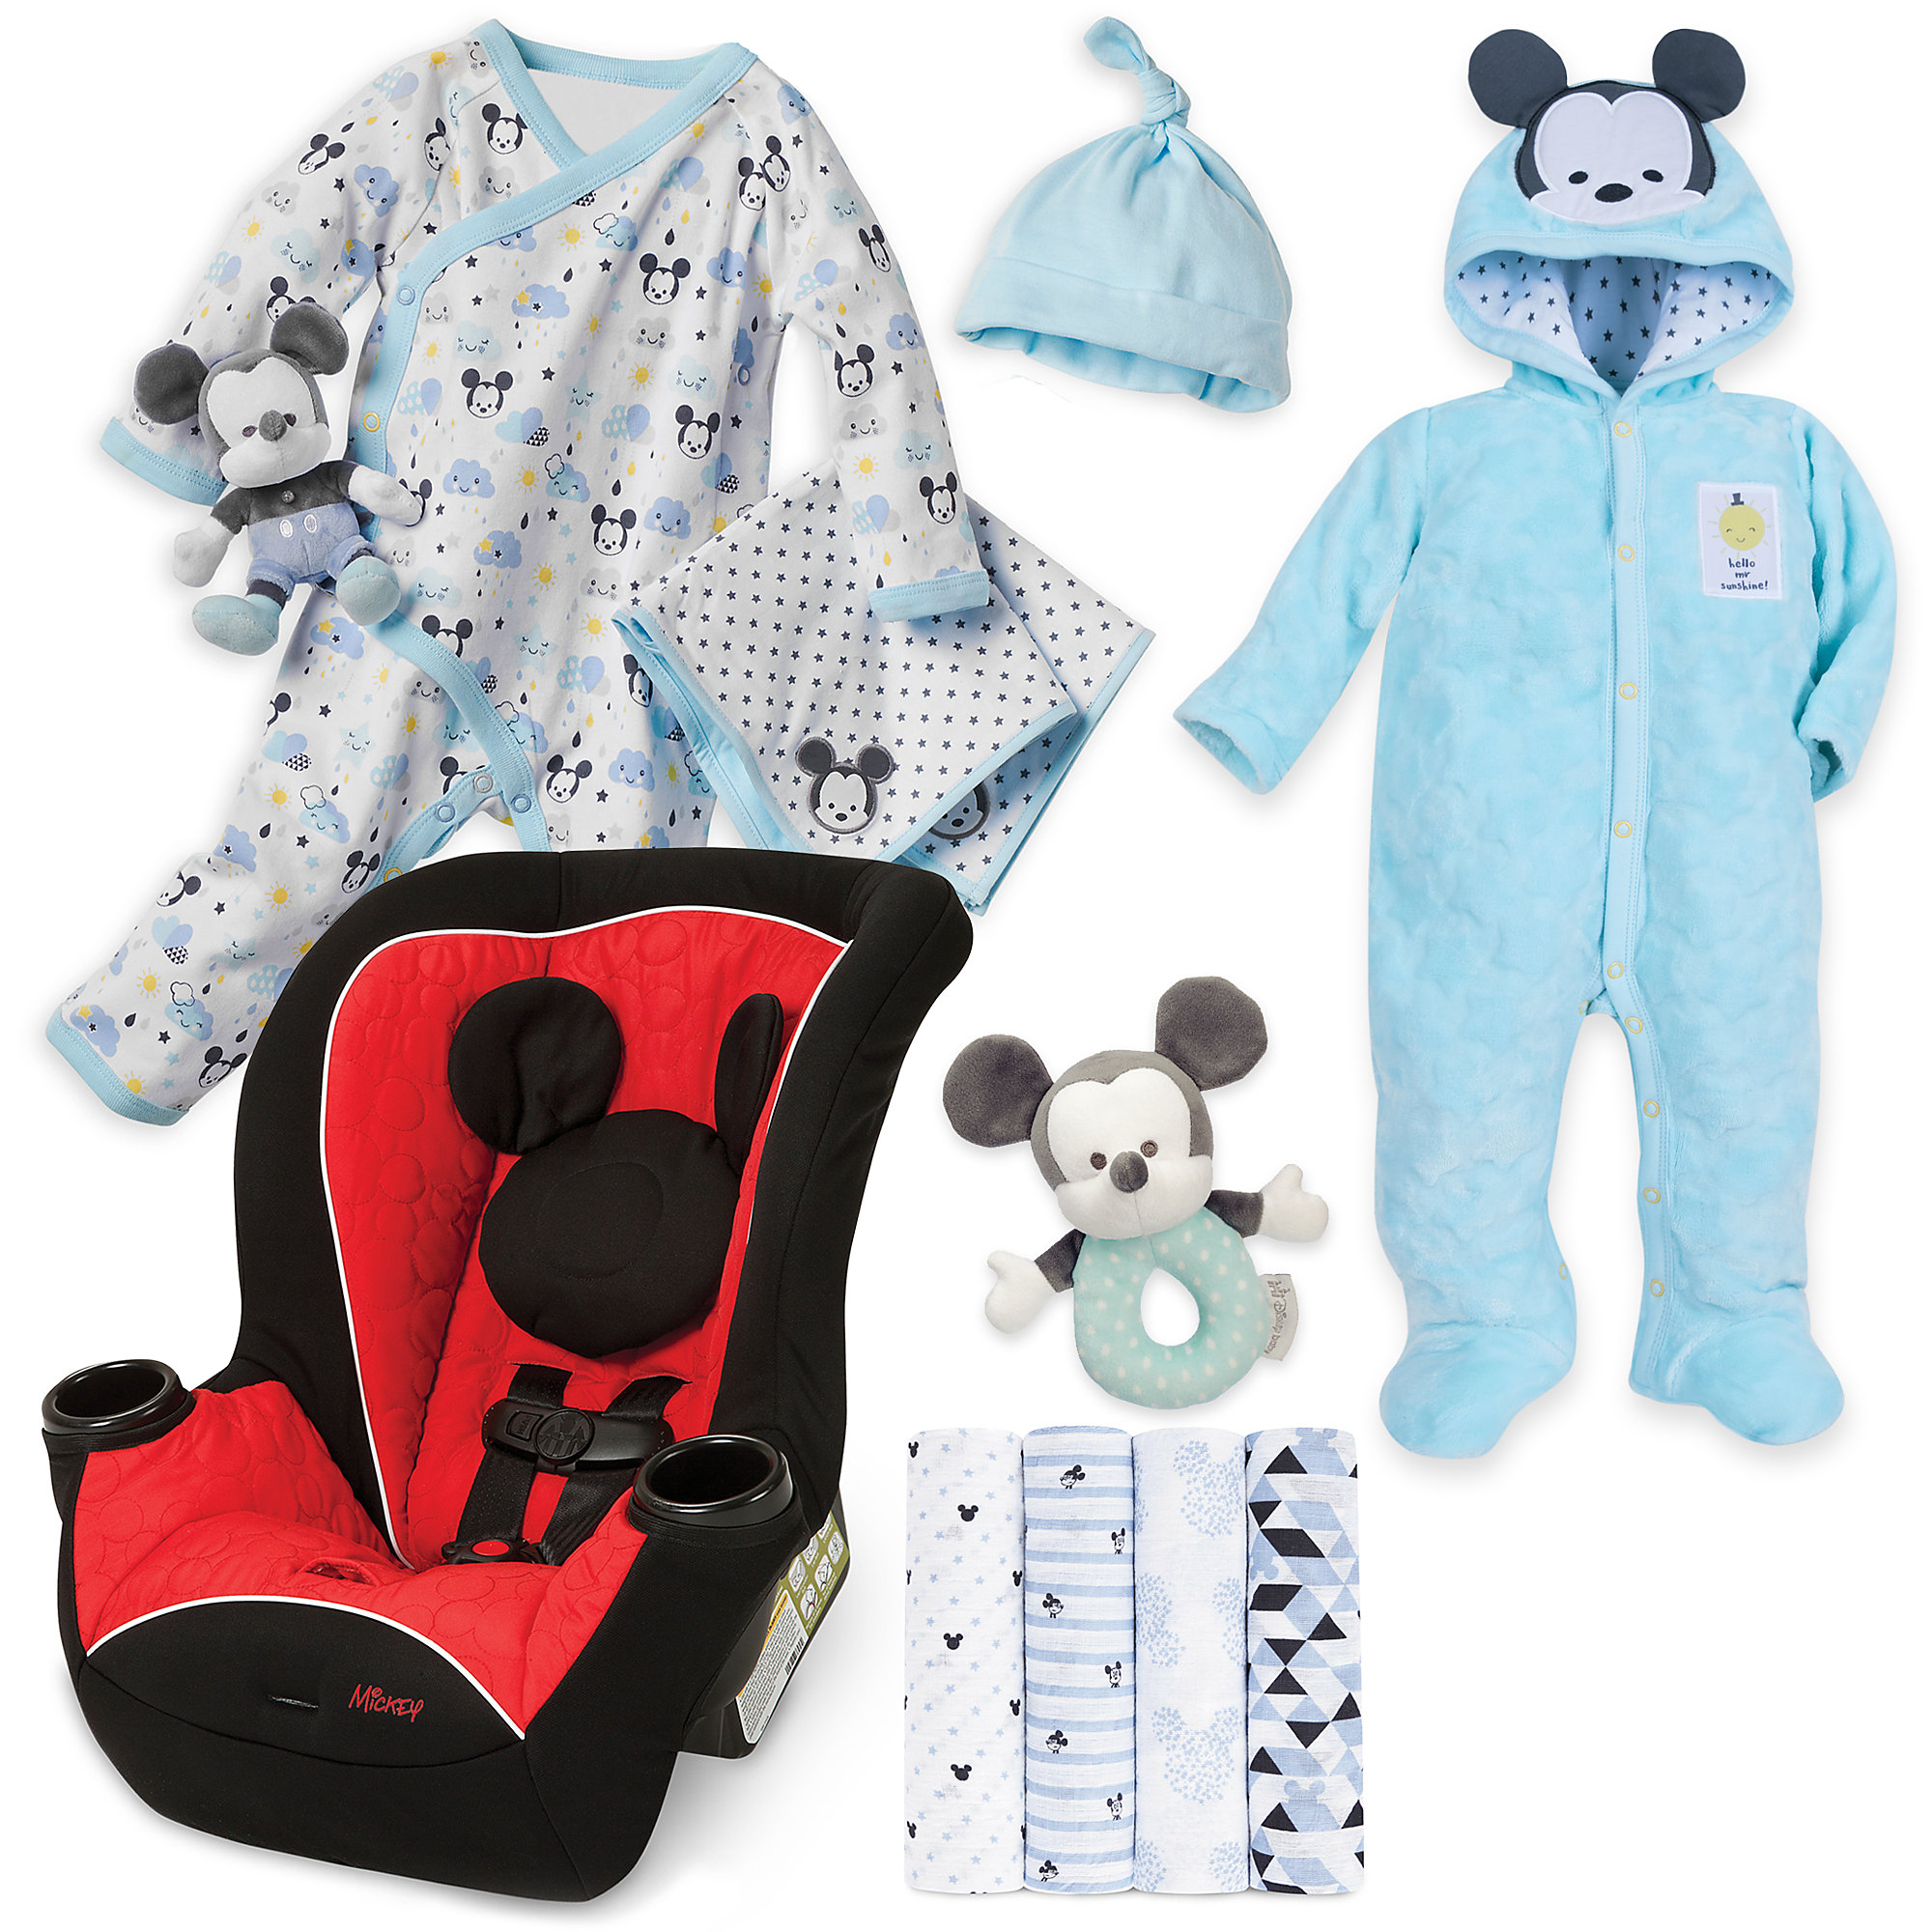 Mickey Mouse Welcome Home Gift Collection for Baby